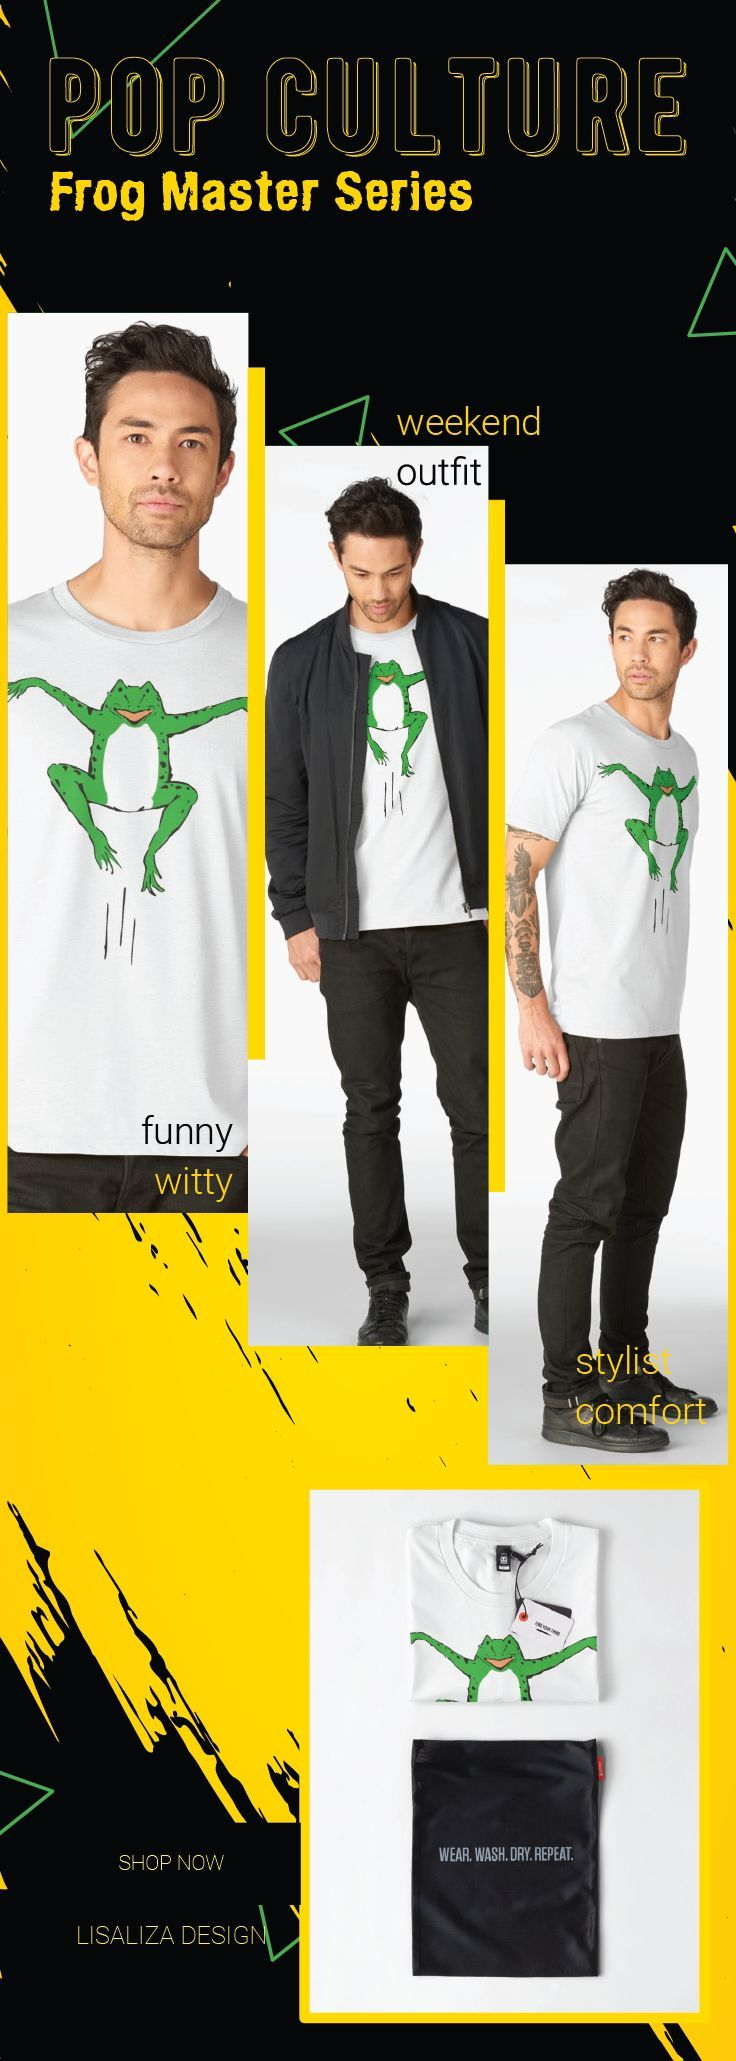 Men's Premium T-Shirt Frog Master - Crane Jump byLisaLiza Redbubble.   Get one today! Men's & Women's Sizes available.   Check out our full catalog for tons of funny ,witty & cool pop culture inspired t shirt   #PopCulture #ForTeens #Teens #Cool #Funny #Witty #Gifts #FrogMaster #RedbubbleMen   #Lisaliza #Frog #Redbubble #tumblr #Pet